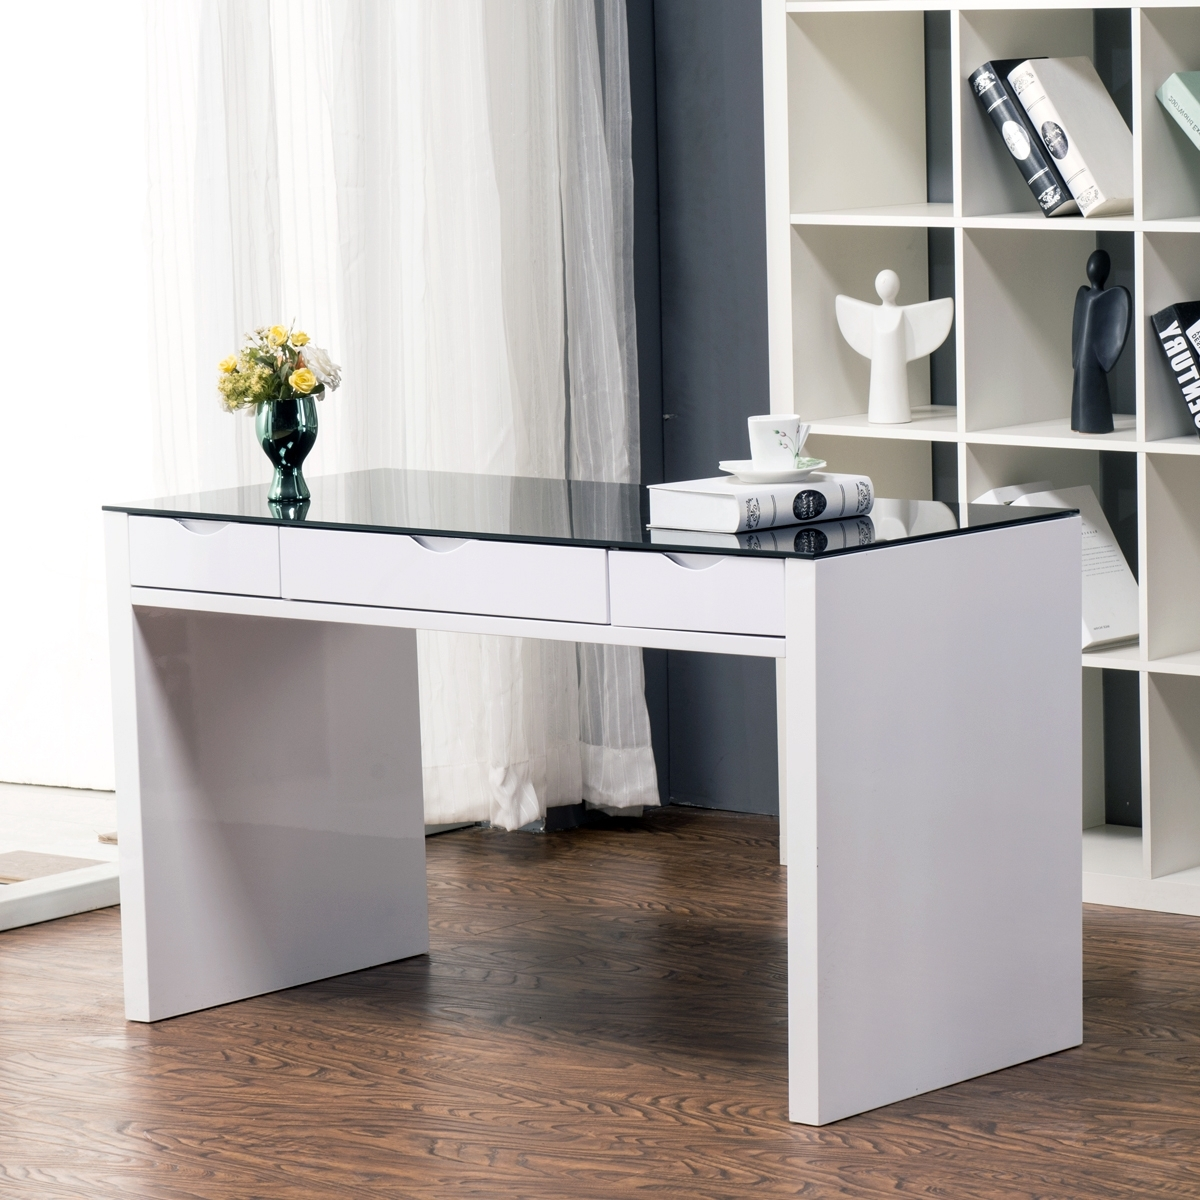 2019 Computer Desks In White Inside Furniture : Cheap White Desk Small Computer Desks Get Quotations A (View 6 of 20)